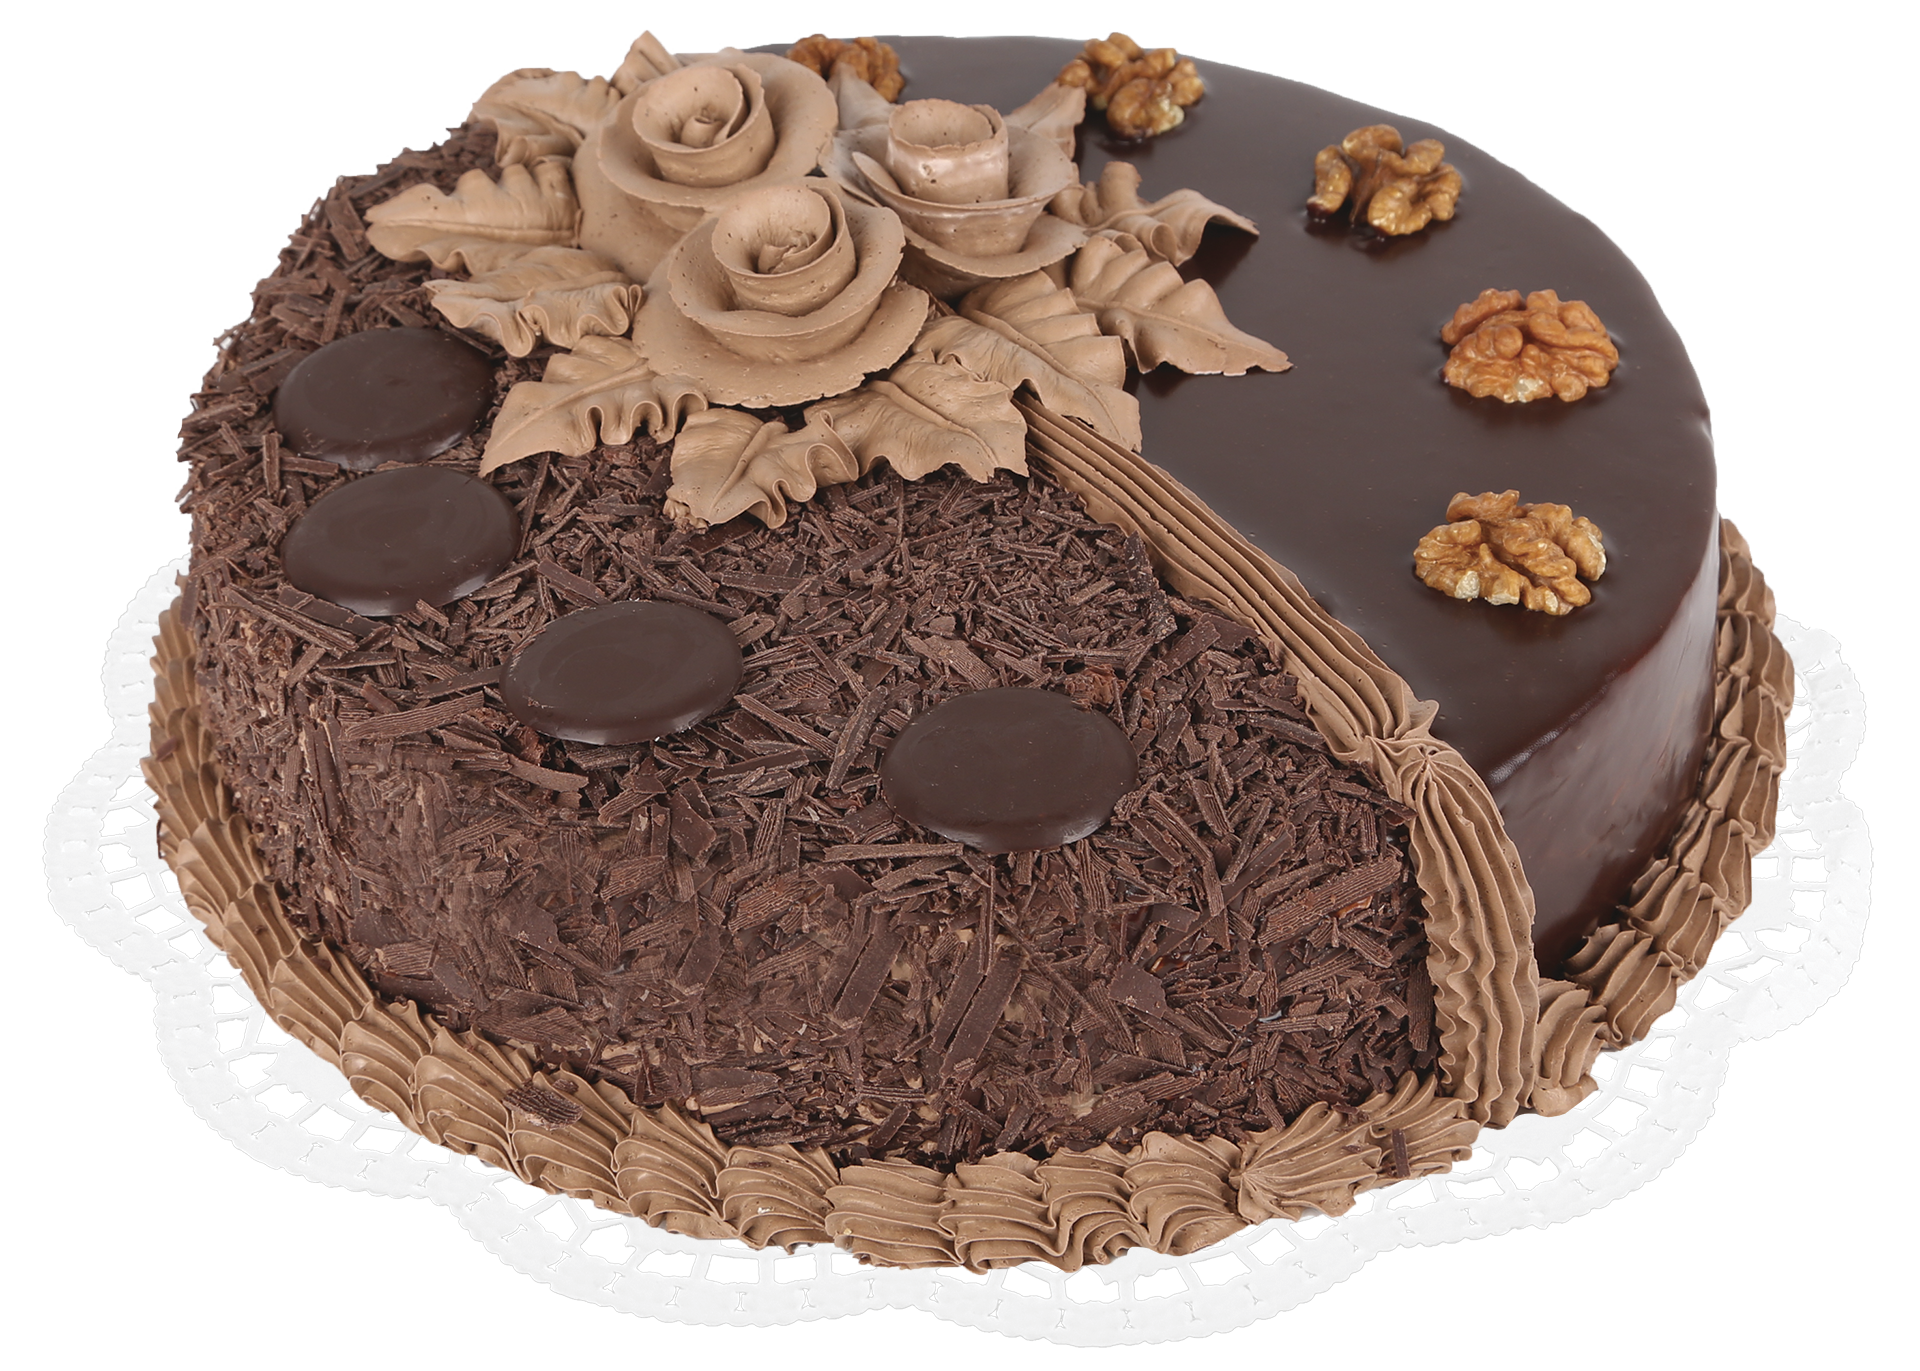 Chocolate Cake Images Download